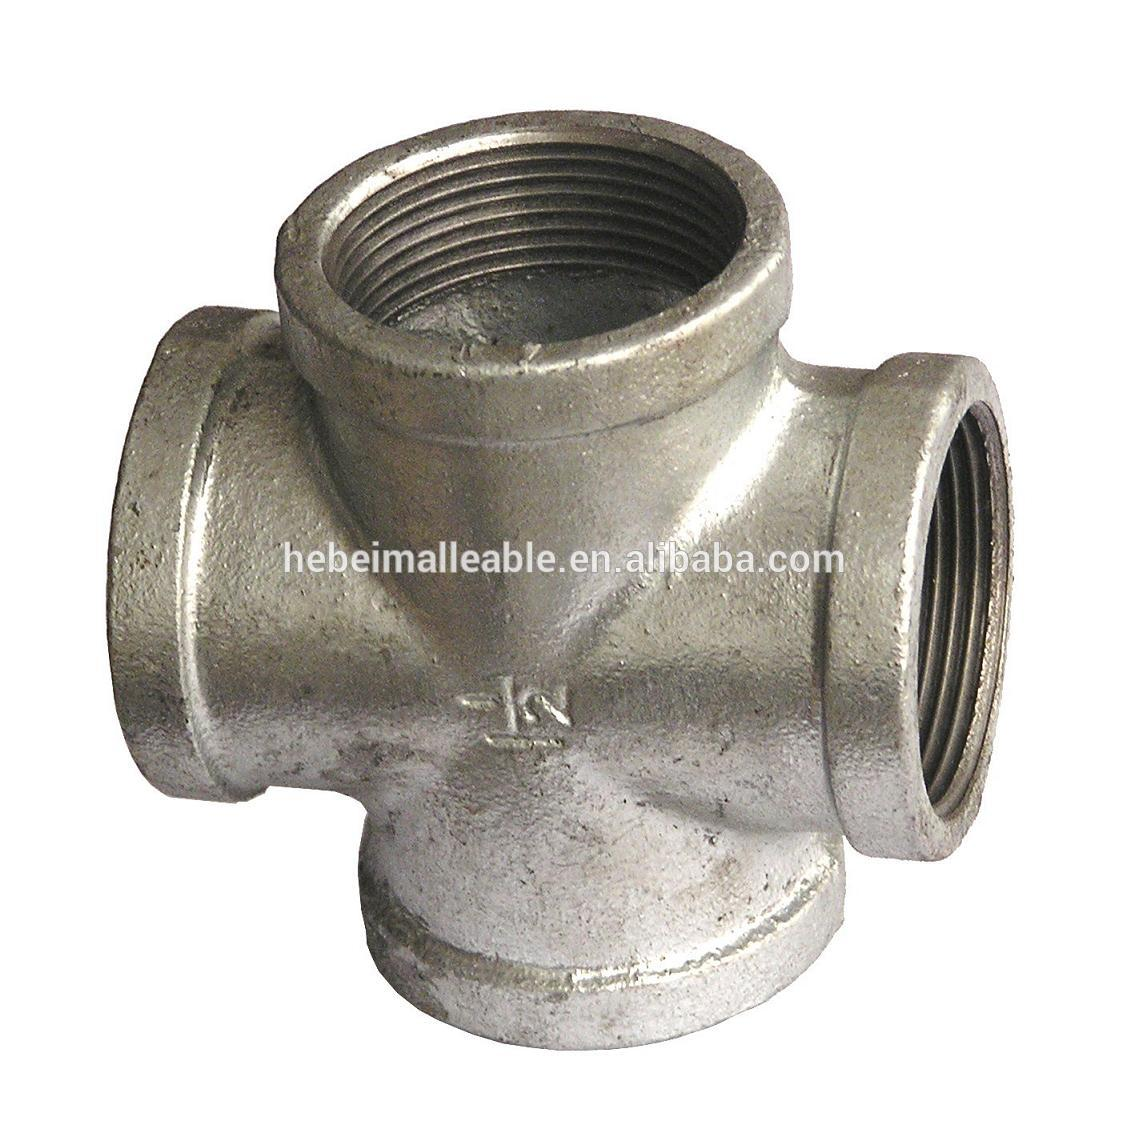 Chinese wholesale Screw Type Hose Fittings - QXM brand BS standard beaded galvanized cast iron four way pipe fitting elbow cross bend reducer flange – Jinmai Casting